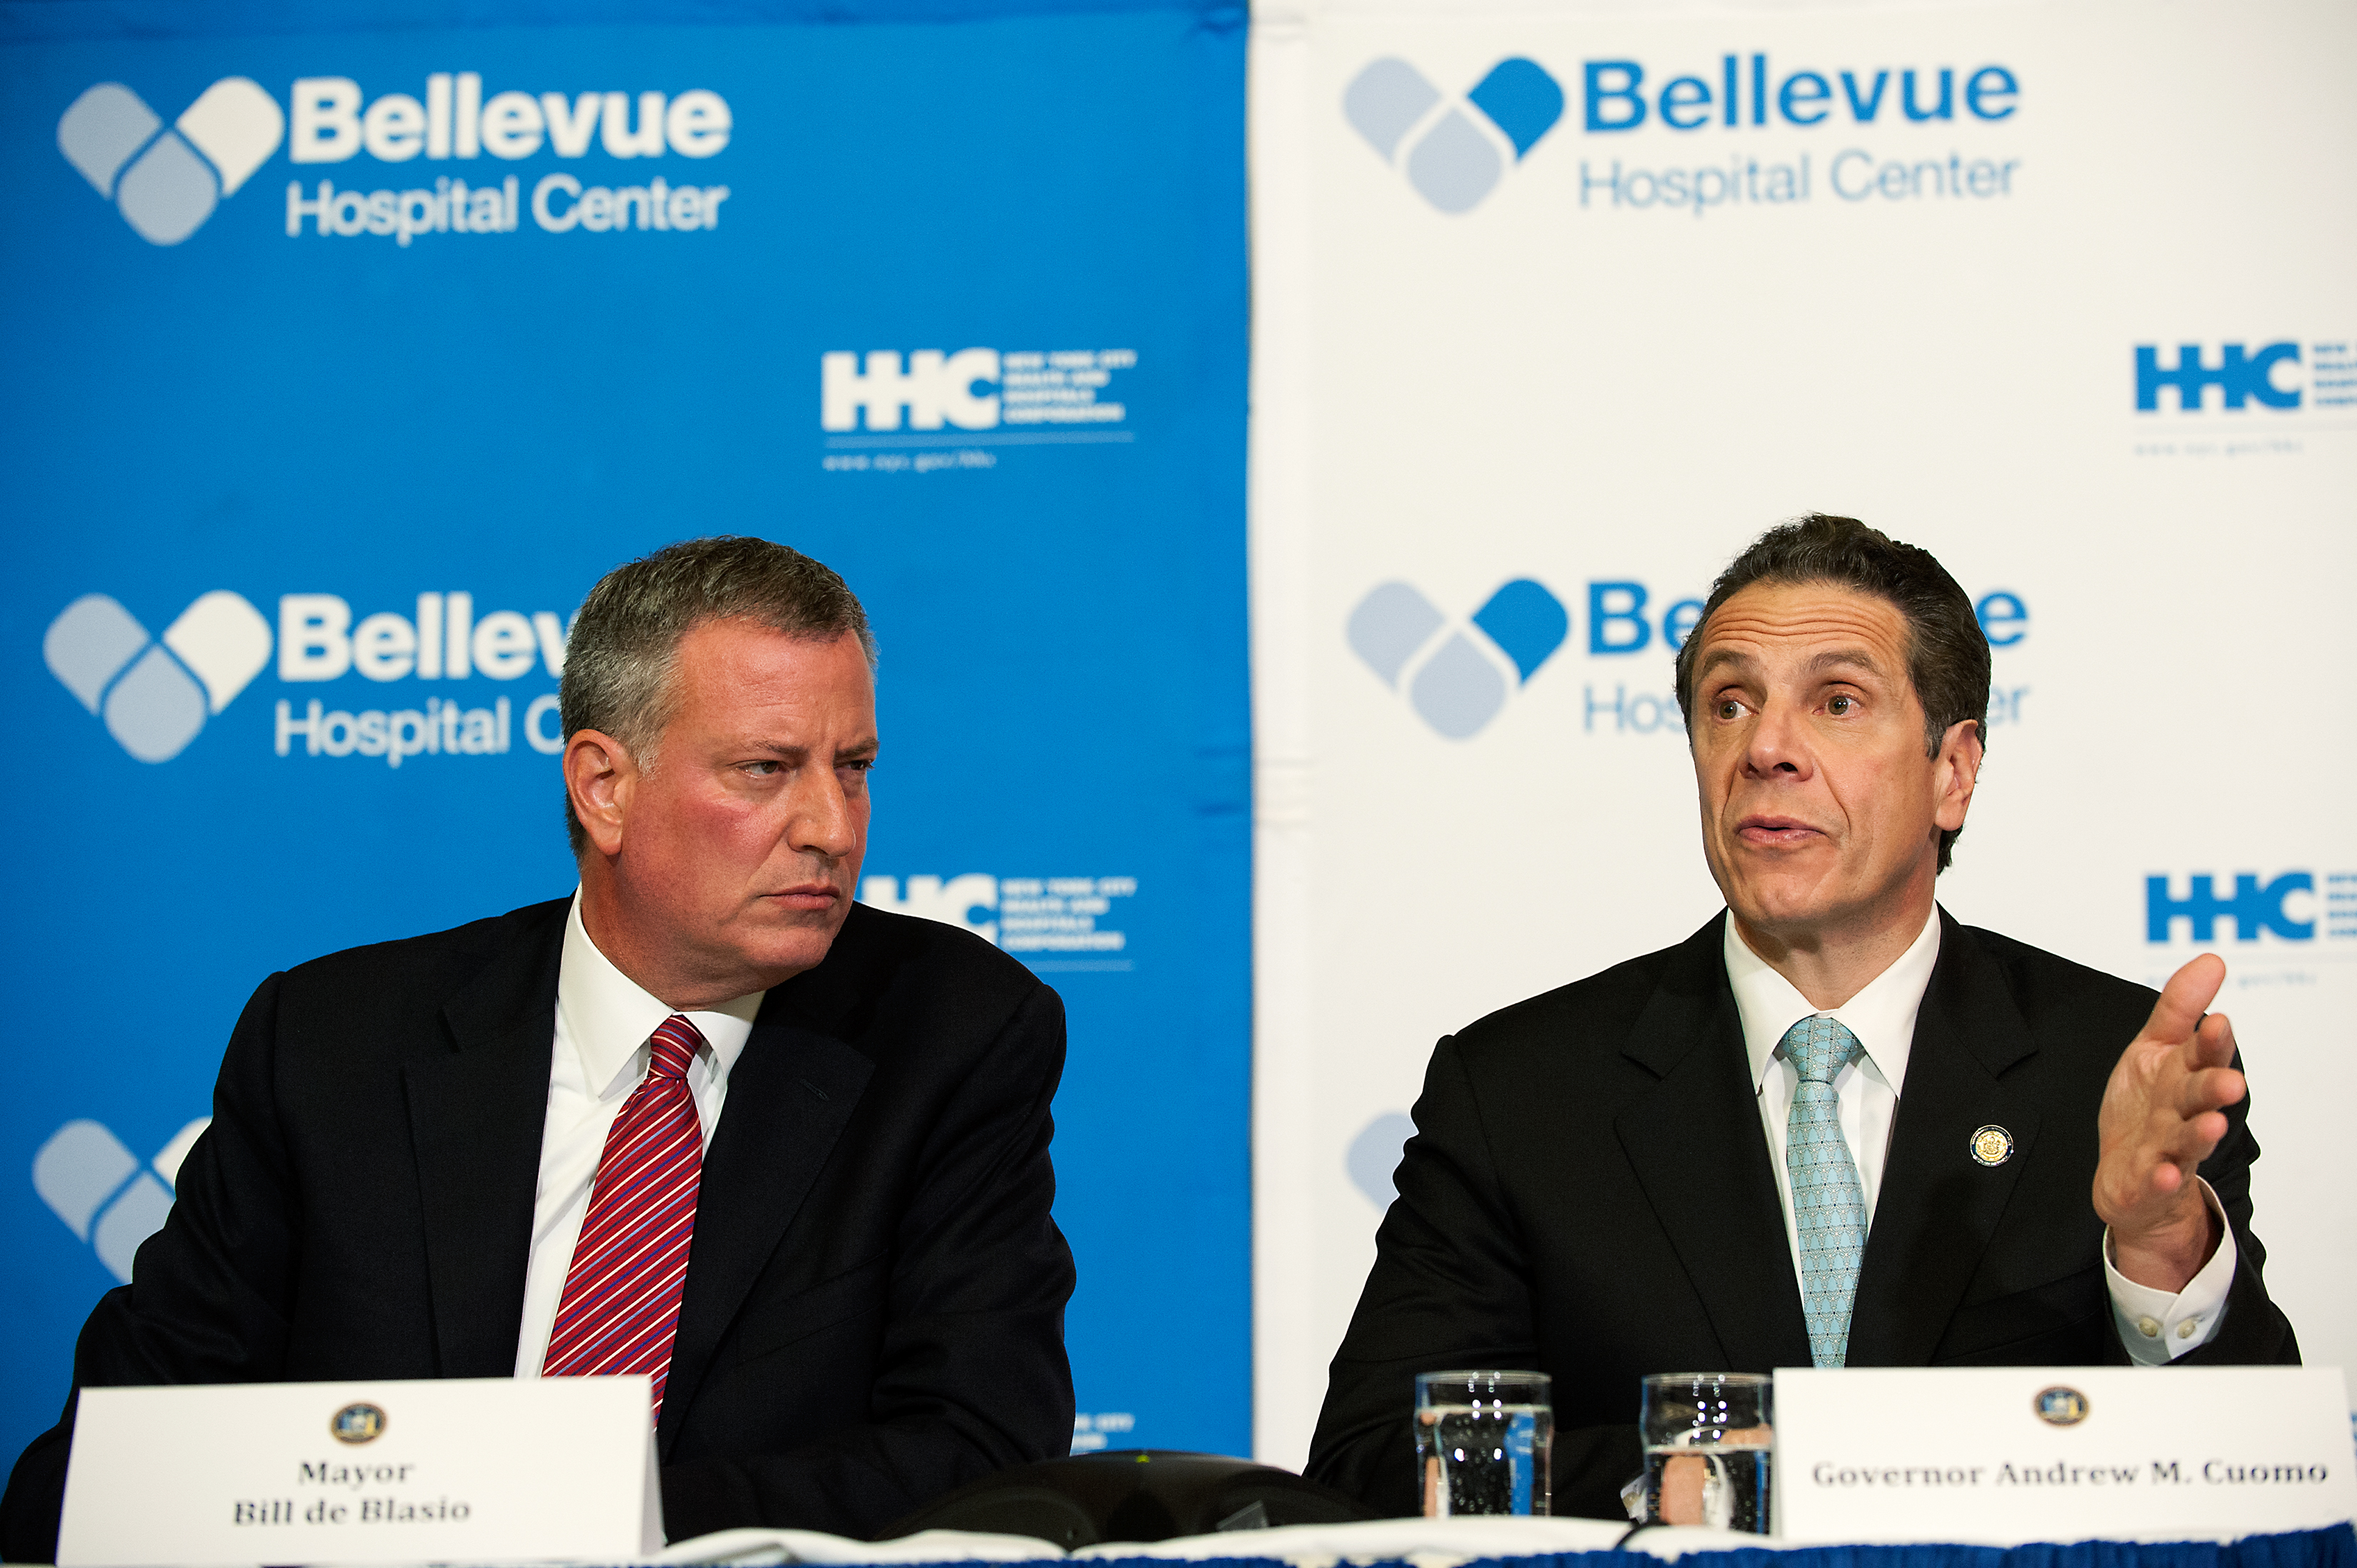 Mayor Bill de Blasio with Gov. Andrew Cuomo. (Photo: Bryan Thomas/Getty Images)